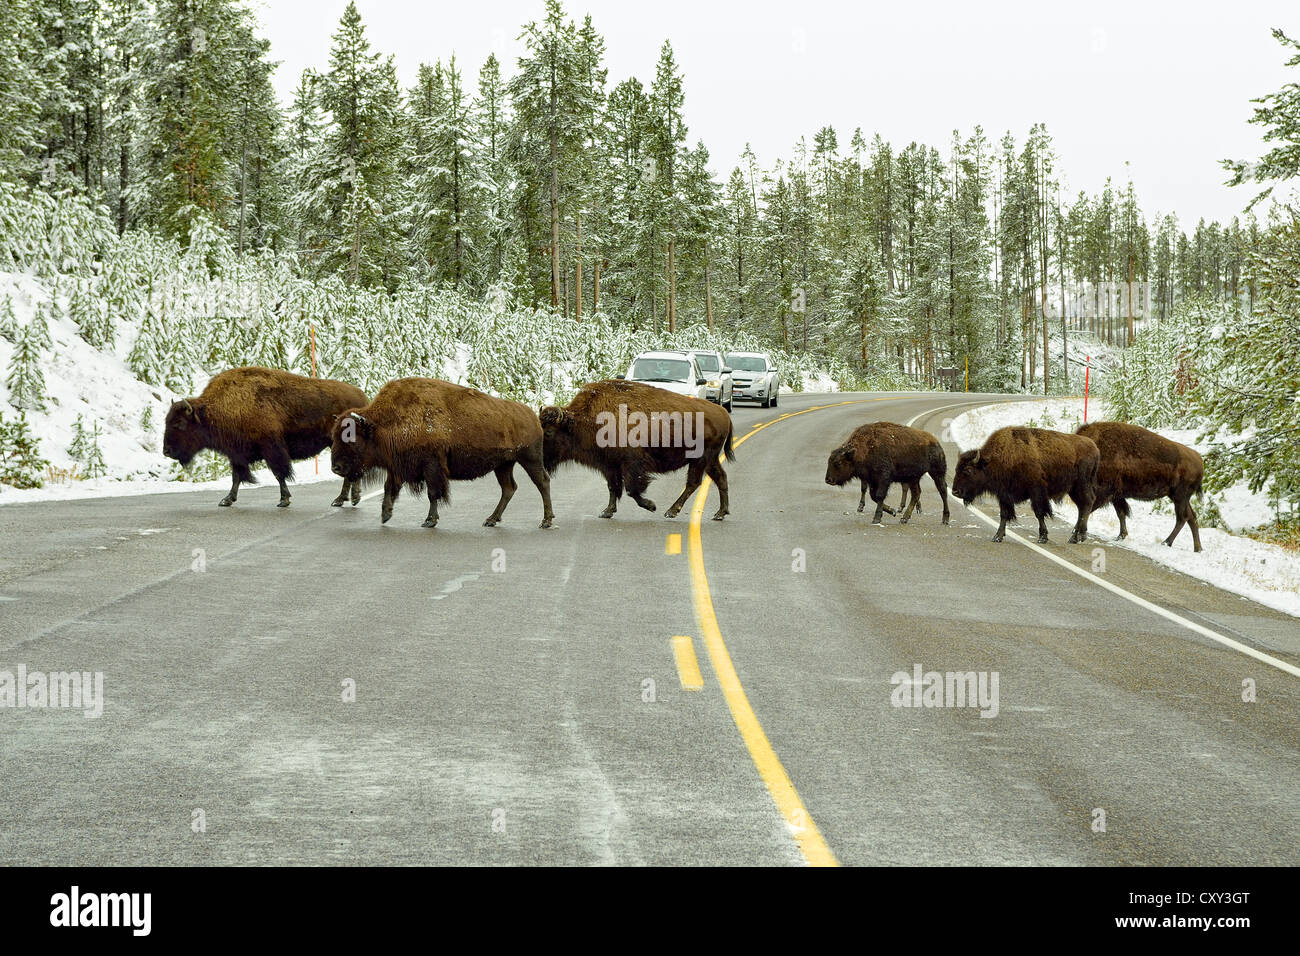 American bisons (Bison bison) crossing the road leading to Old Faithful, Yellowstone National Park, Wyoming, USA - Stock Image